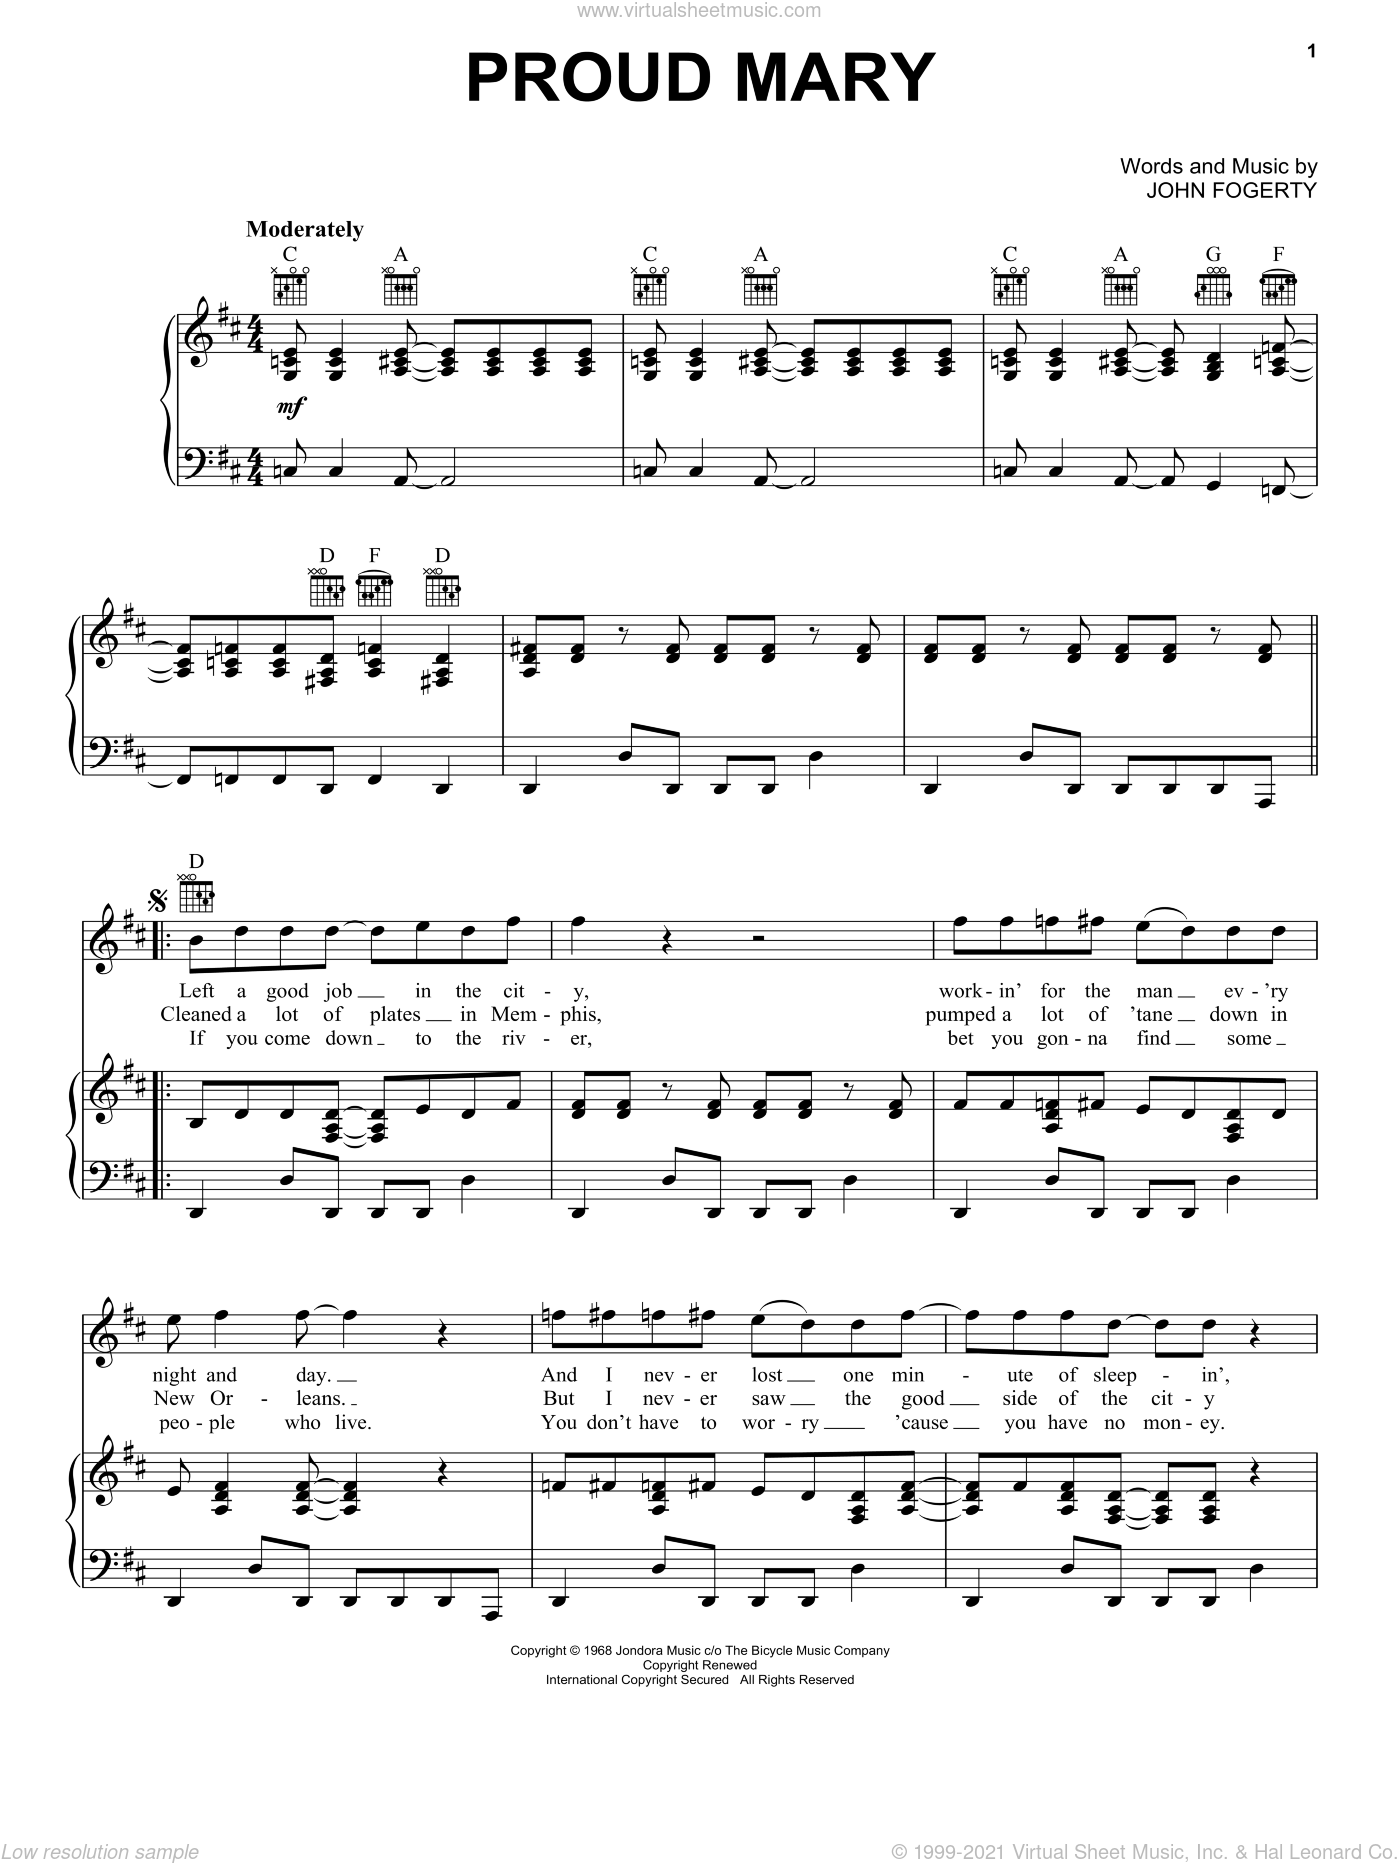 Proud Mary sheet music for voice, piano or guitar by John Fogerty